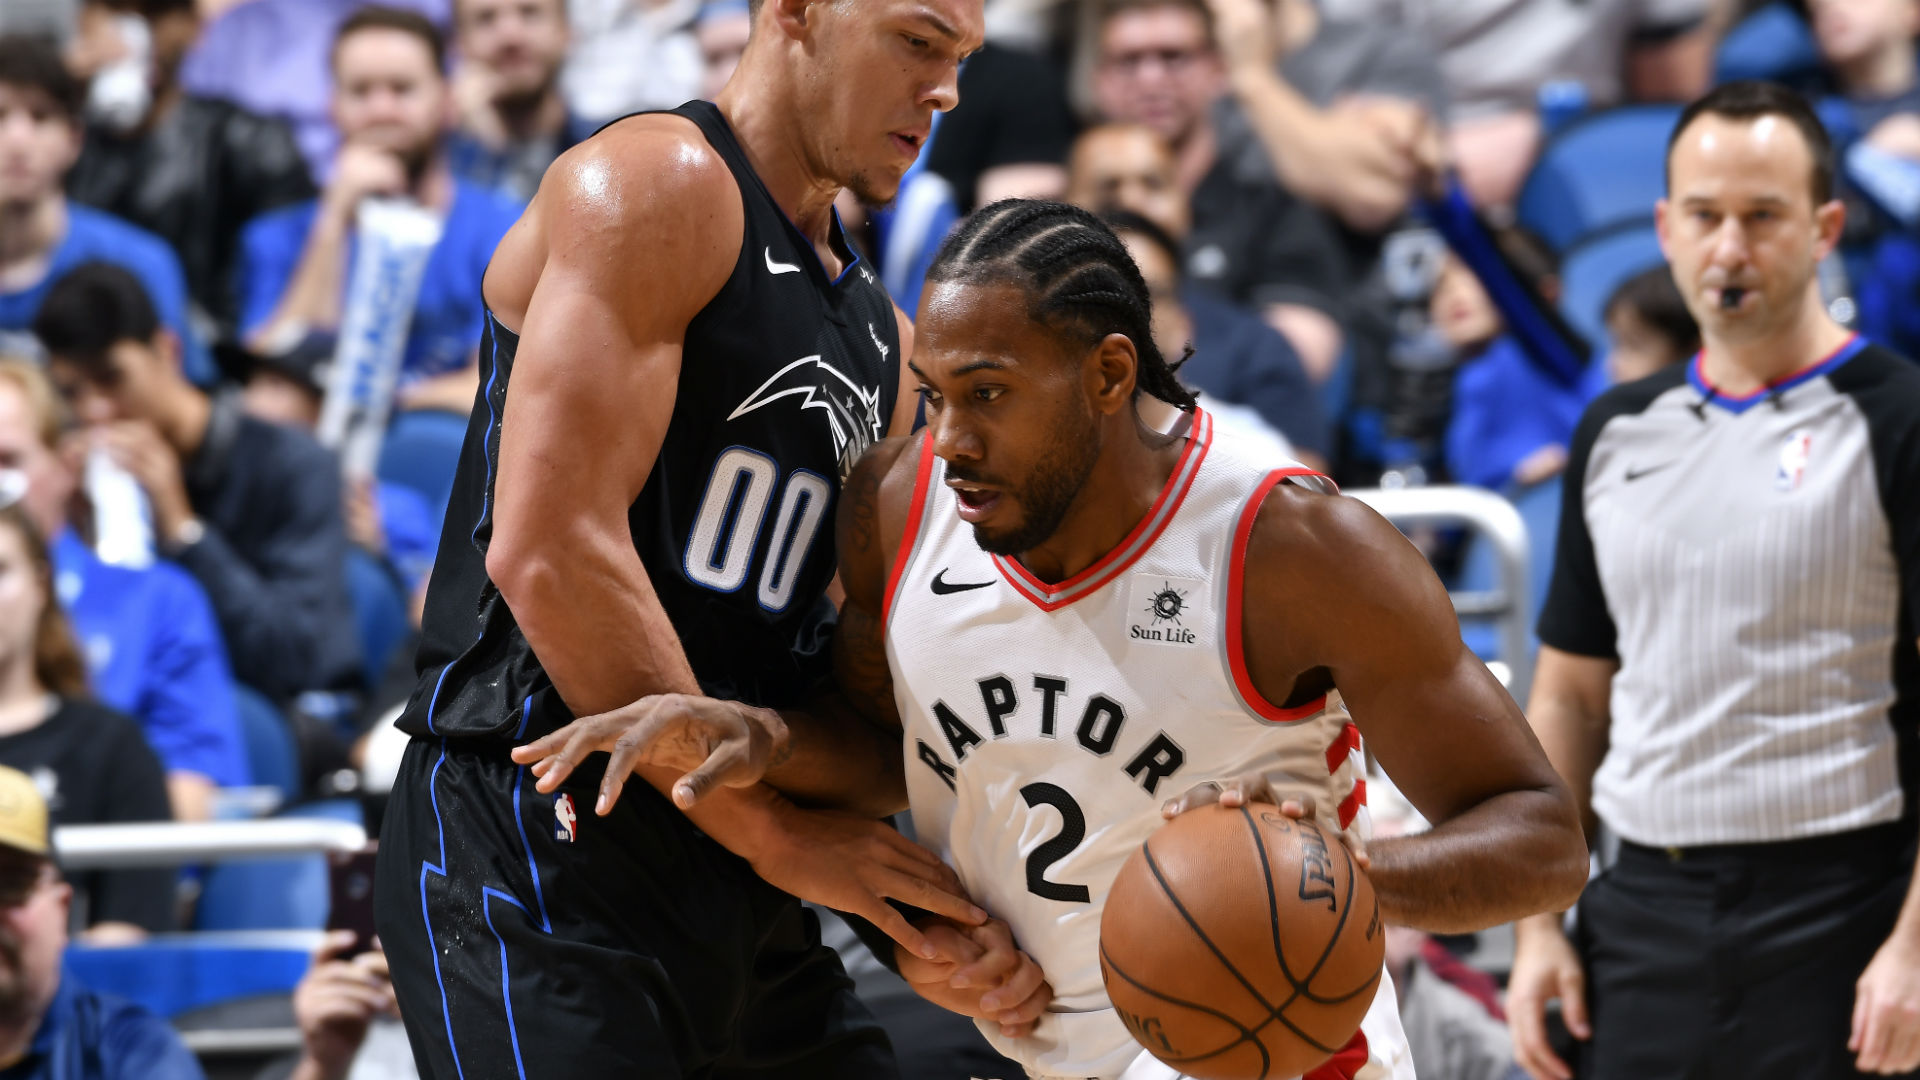 Raptors News: Toronto Raptors Vs. Orlando Magic: Game Preview, Live